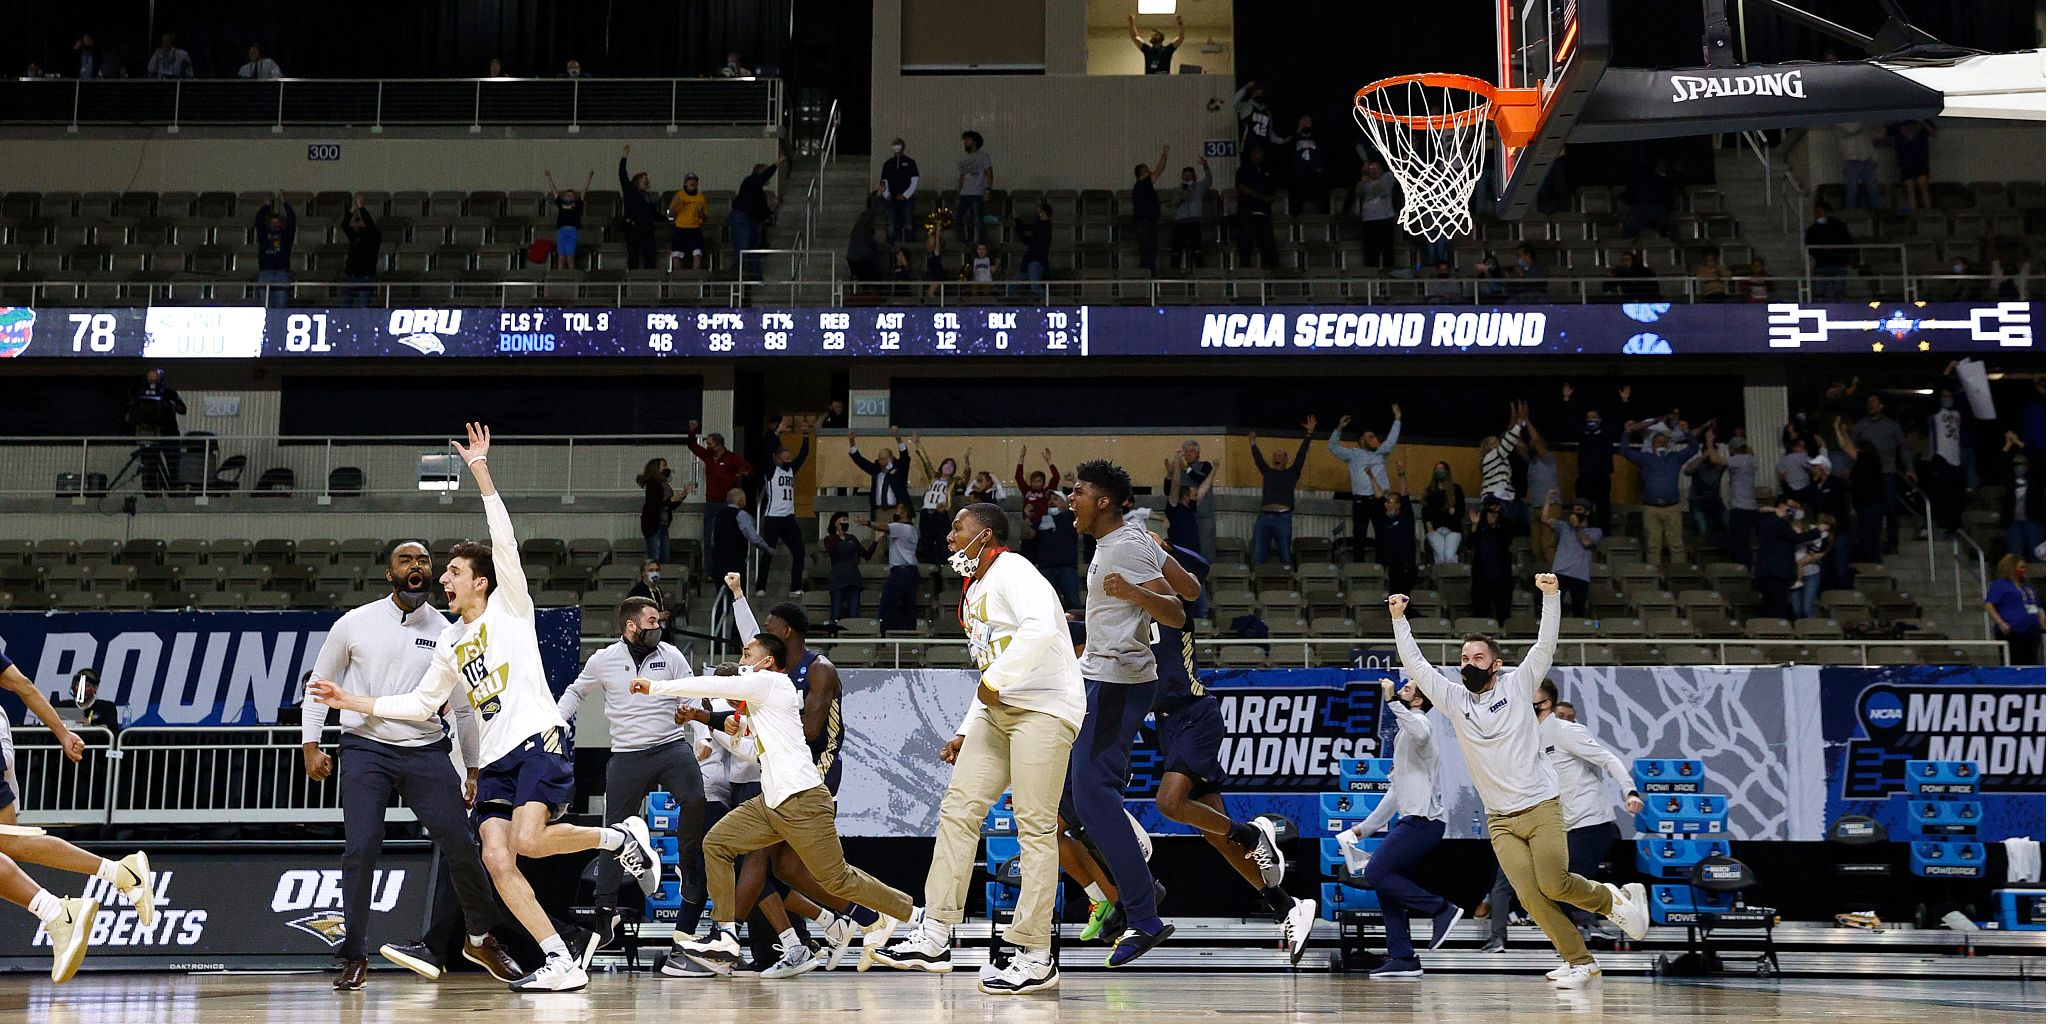 players and coaches jump off the bench in celebration